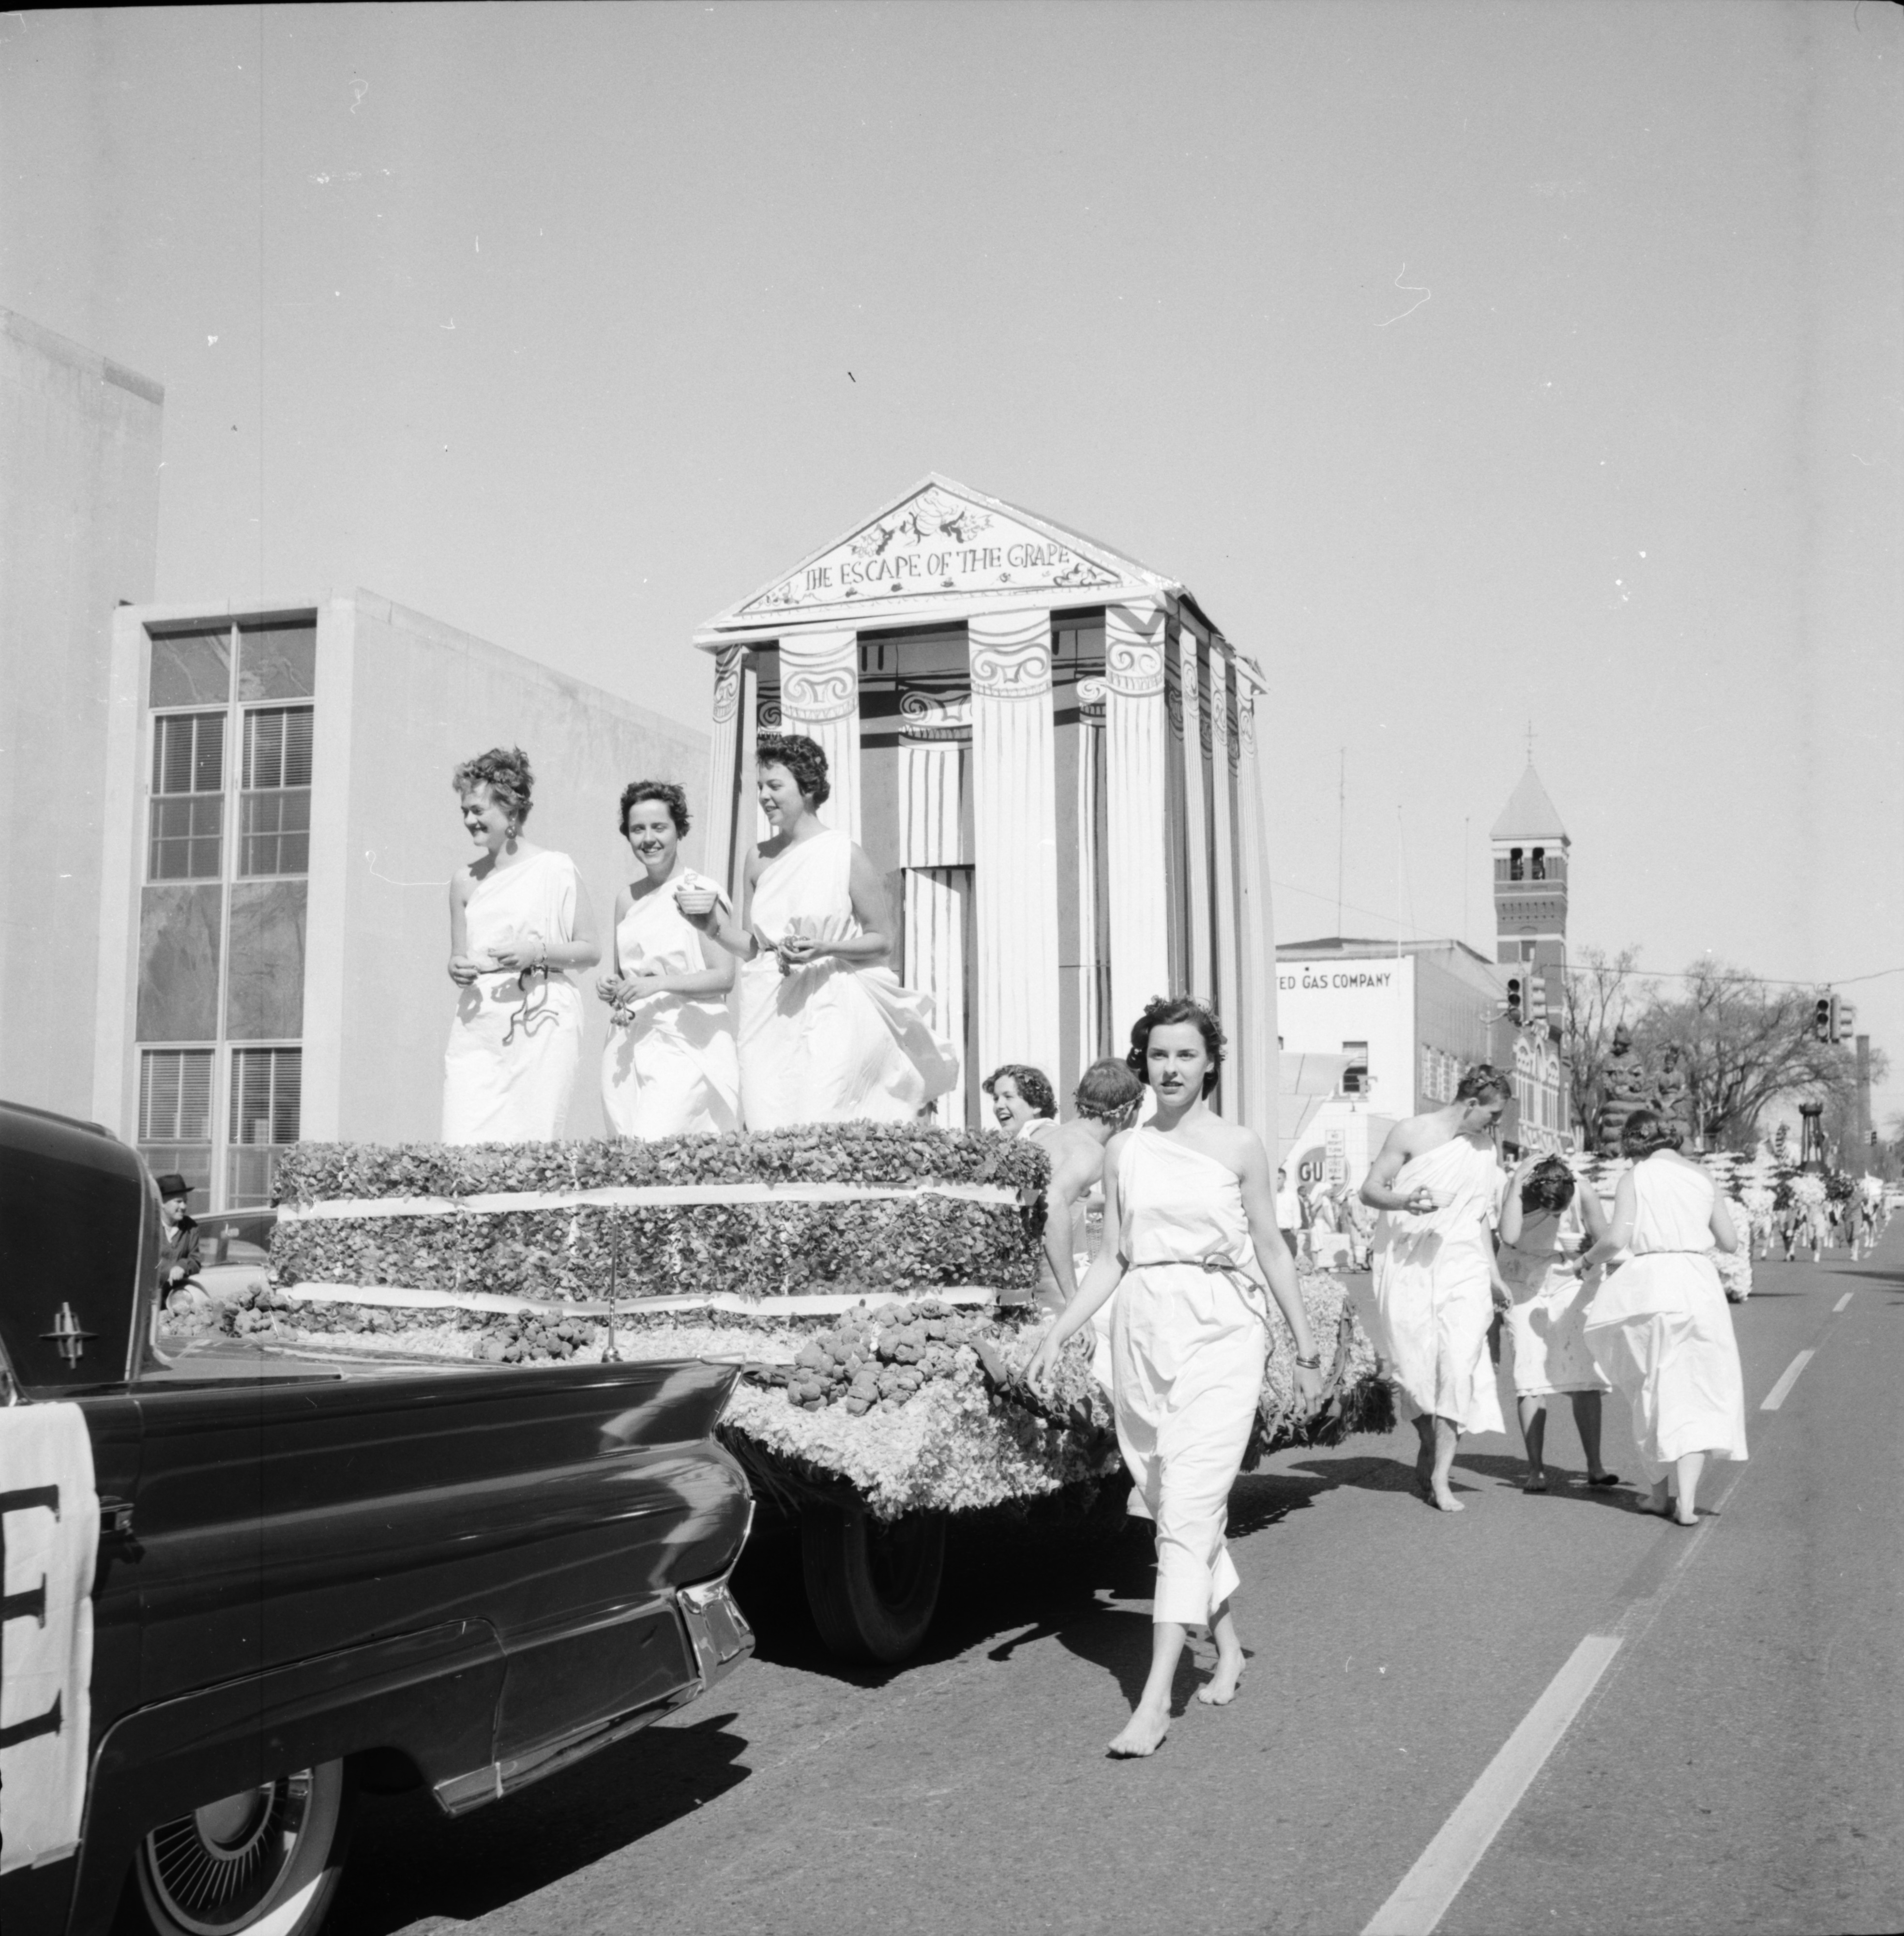 A Float Passes By the Washtenaw County Building in the Michigras Parade, April 1958 image